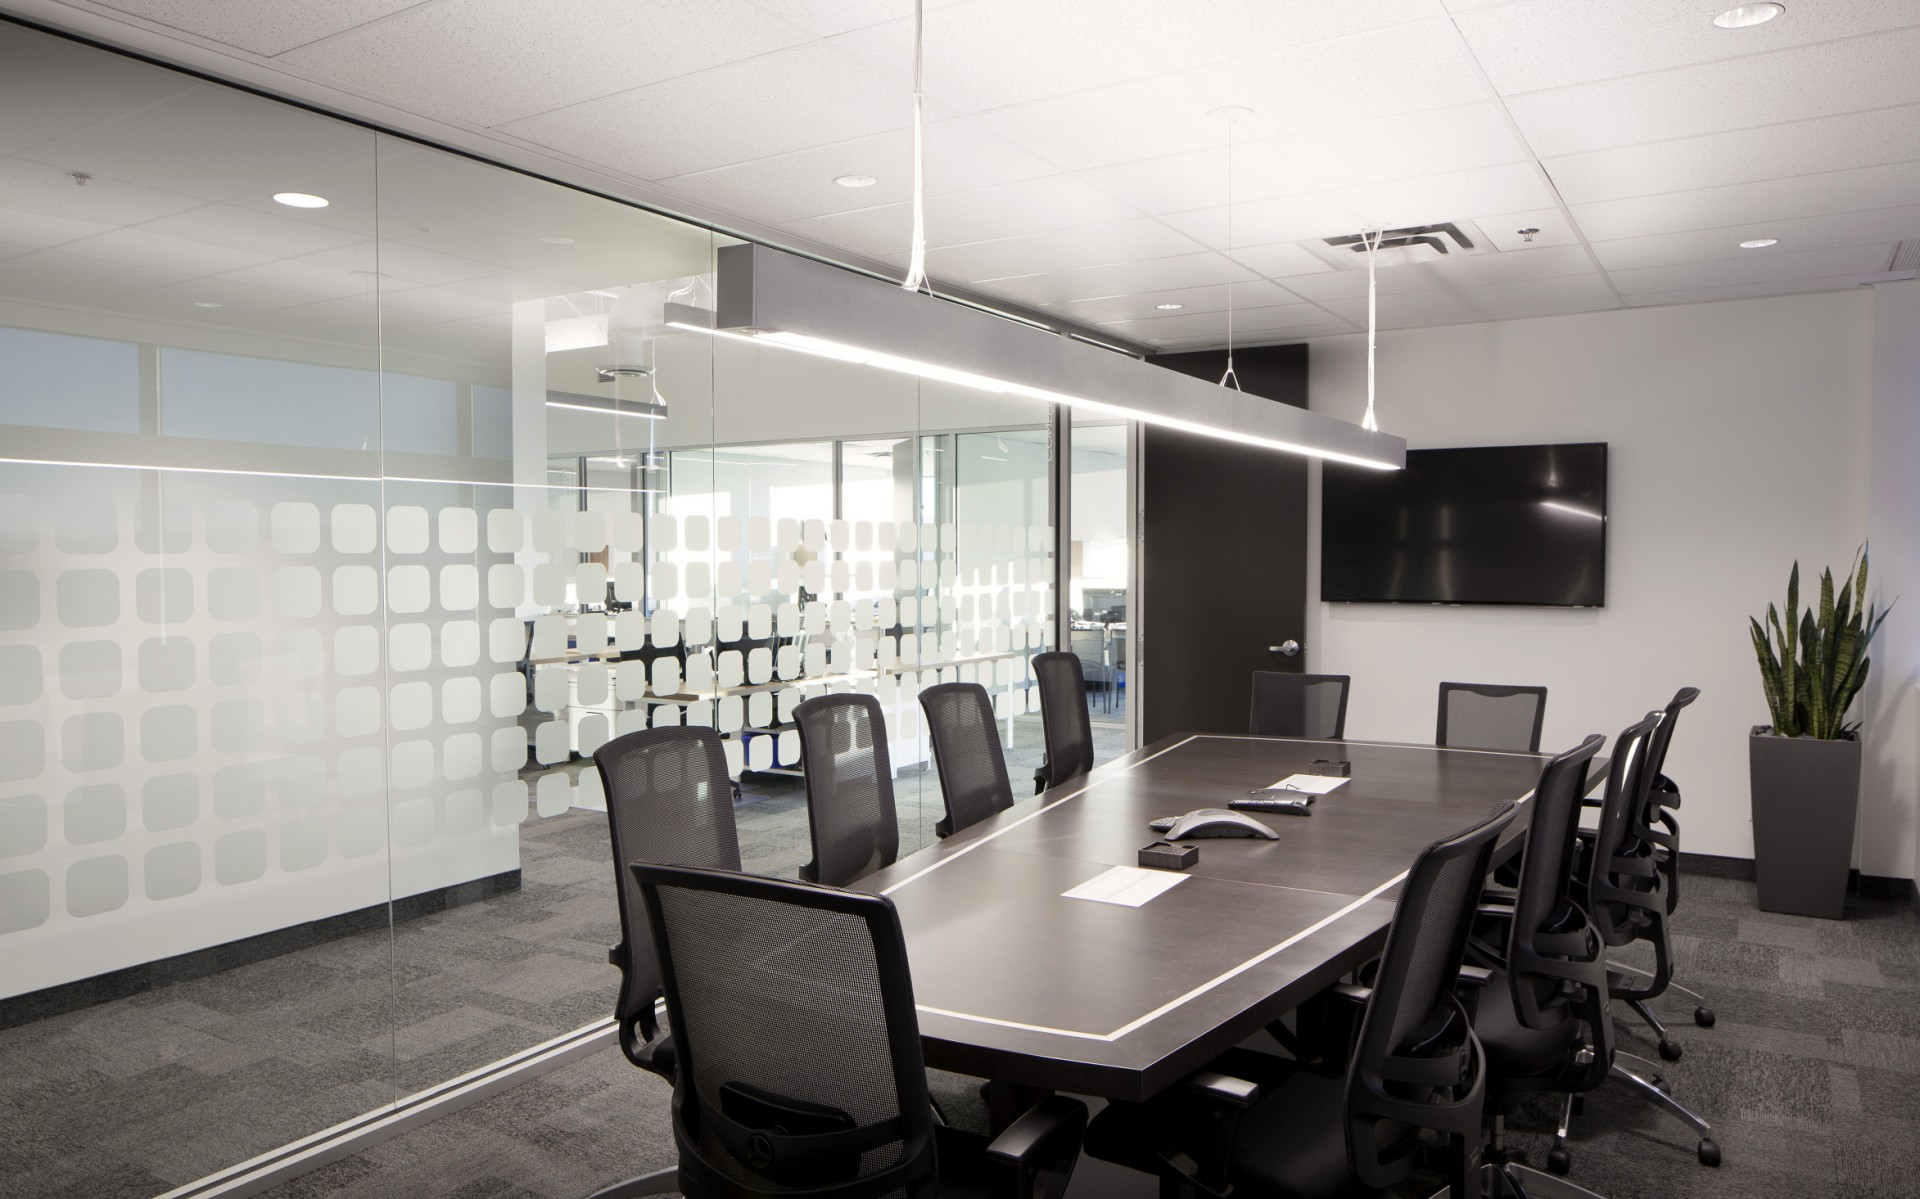 Lumenline Pendants also provide bright ambient lighting for the office's work spaces and conference rooms.